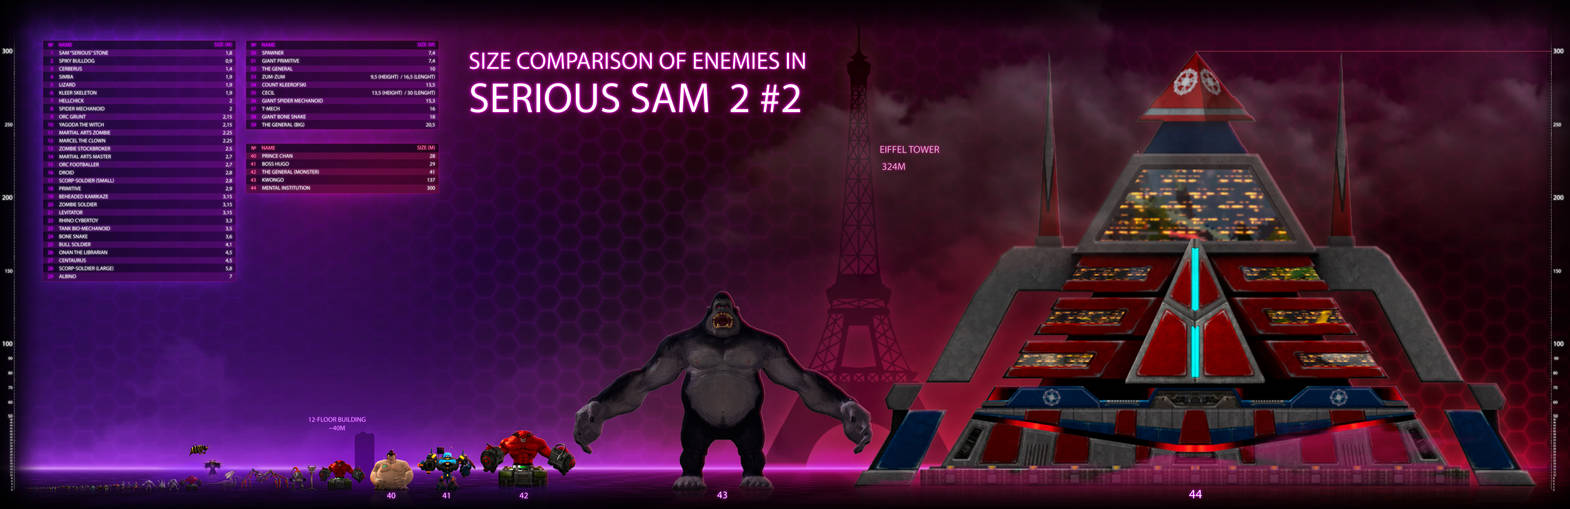 Size comparison of enemies in 'Serious Sam 2' #2 by ImmortalTartal